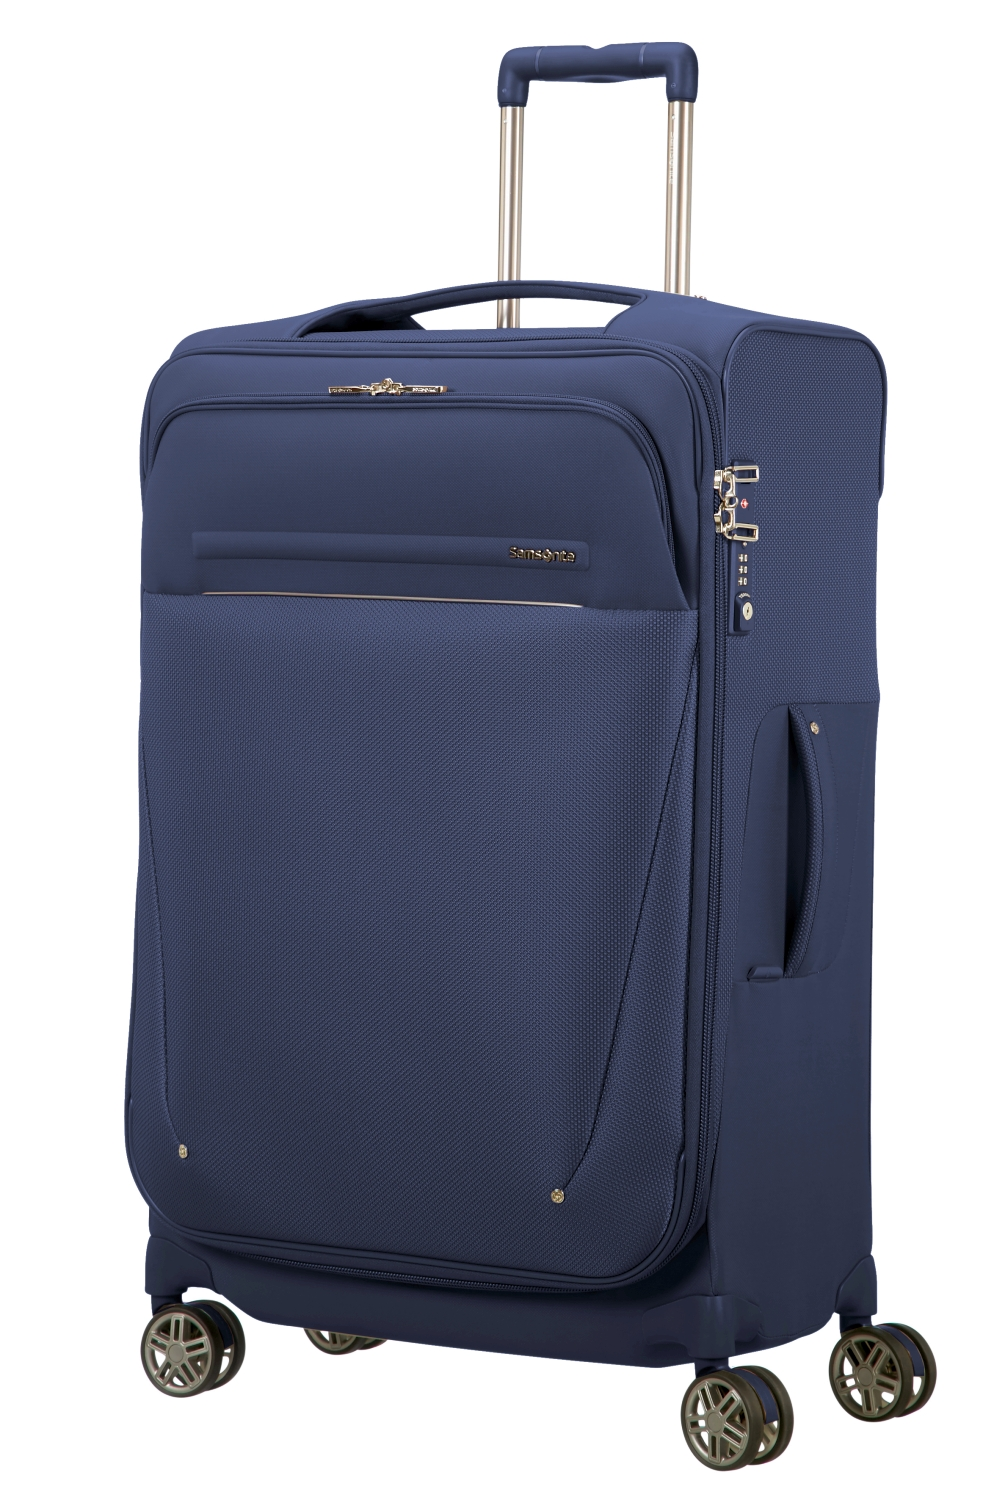 samsonite b lite icon spinner 78 29 exp dark blue. Black Bedroom Furniture Sets. Home Design Ideas